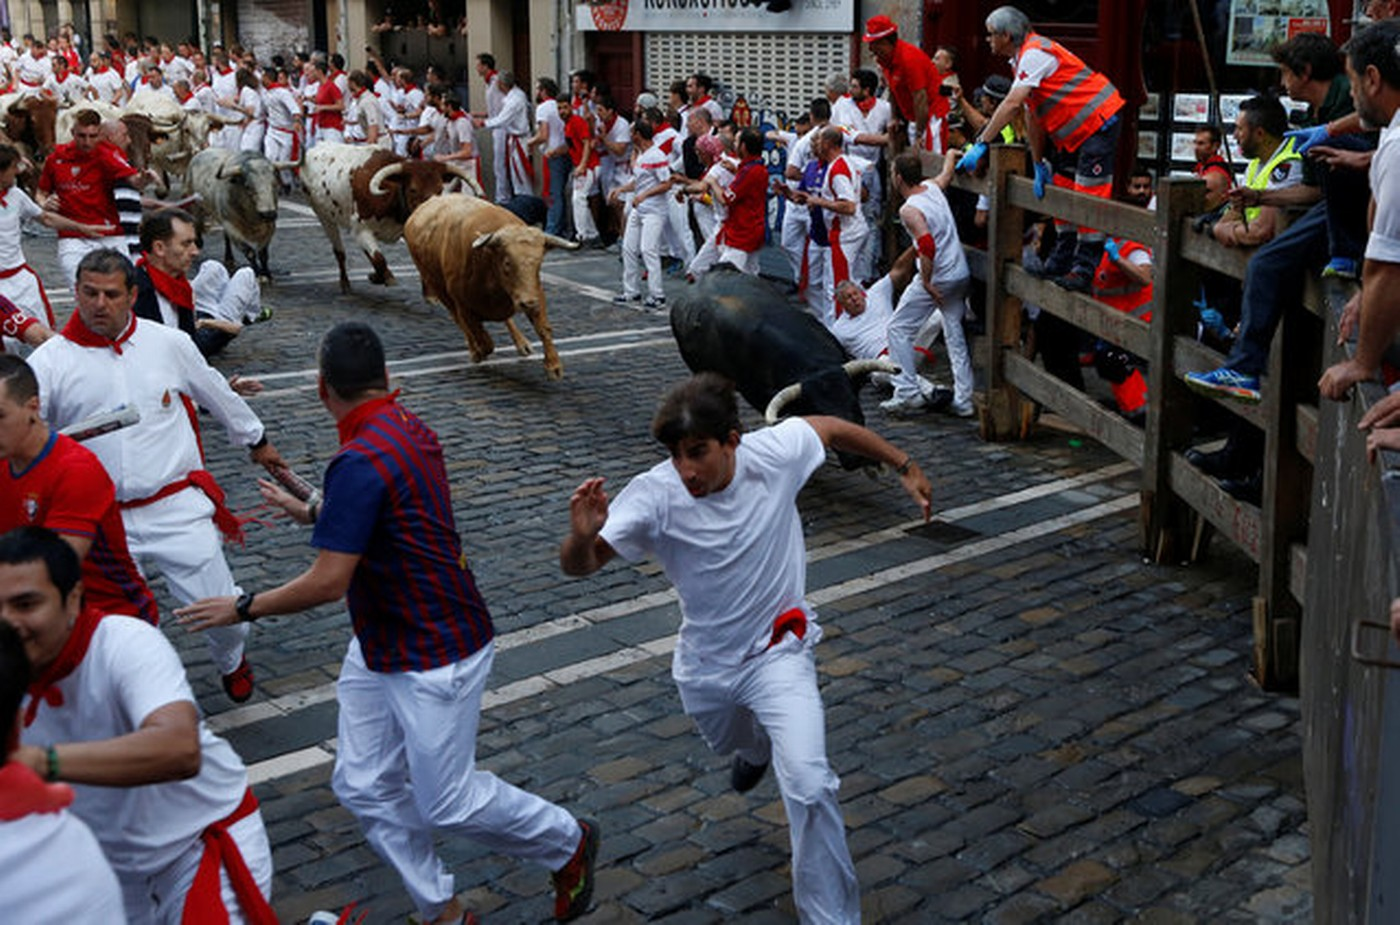 an analysis of the culture of spain and the concept of the running of the bulls at the fiesta de san The encierro or running of the bulls is undoubtedly the highlight of the annual san fermin fiesta in pamplona, spain the festivities begin promptly at 8 am at the church of san cernin.